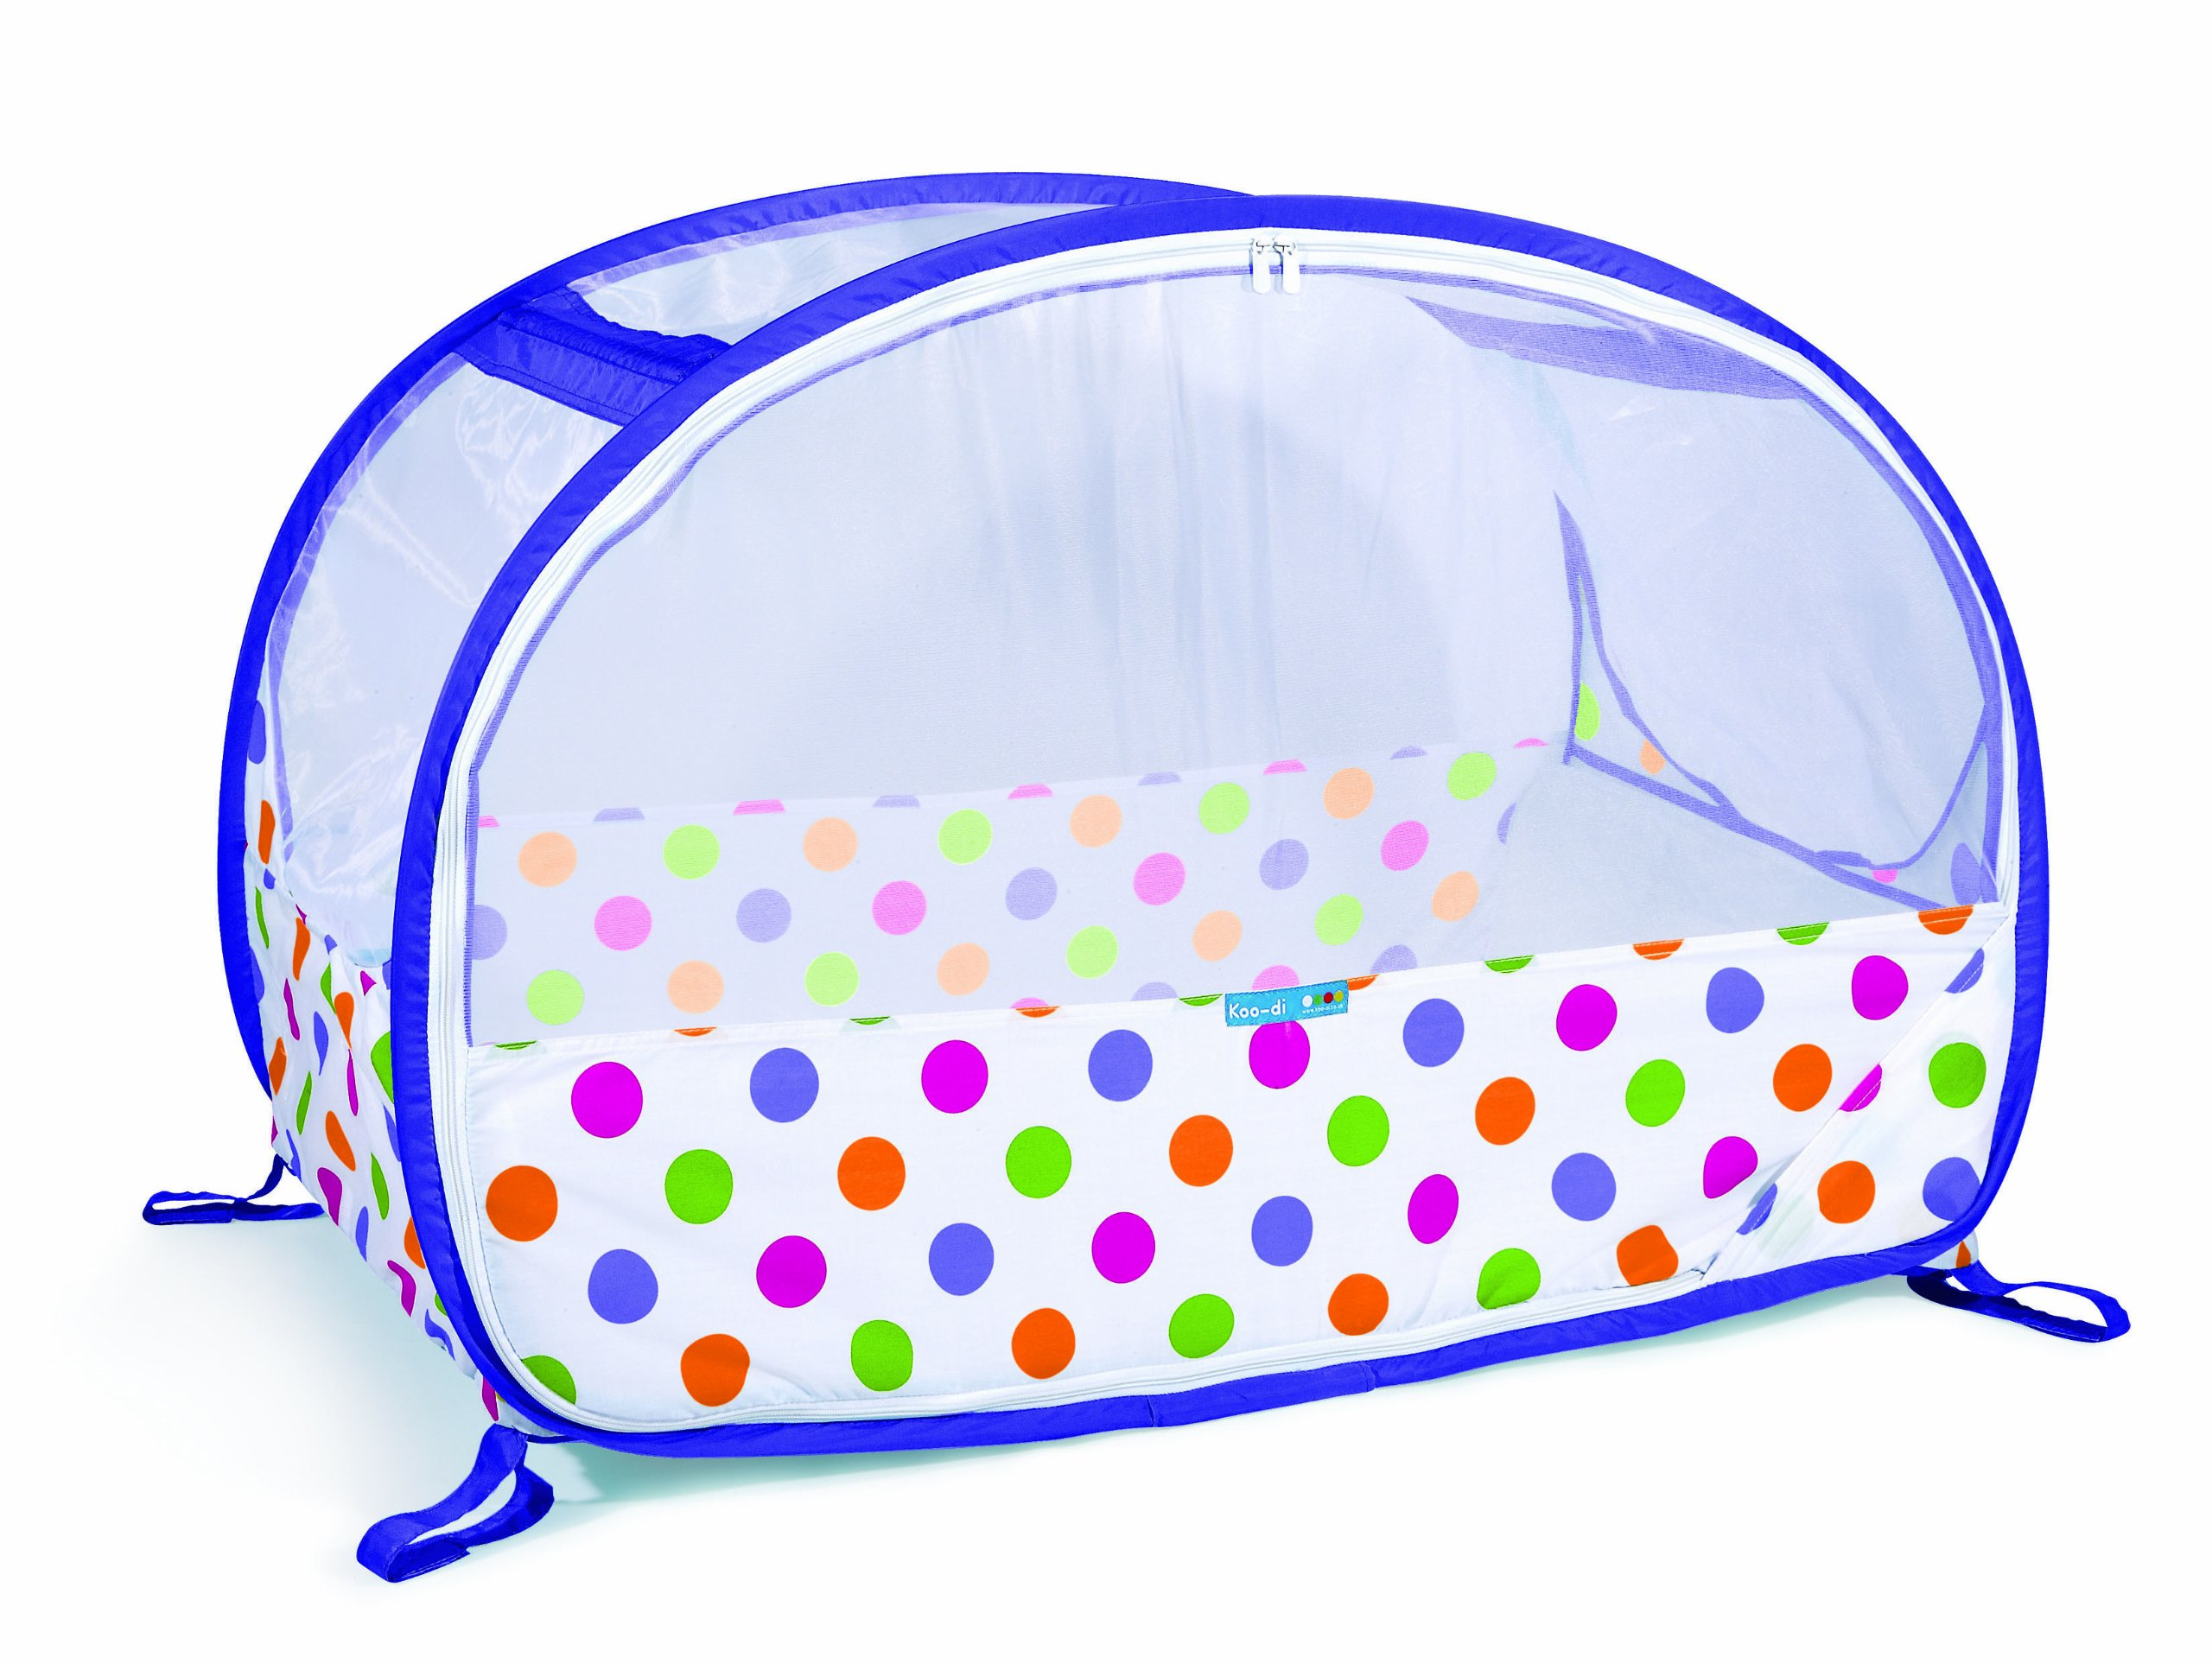 Koo-di Pop Up Travel Bubble Cot (Polka Dot Print)  A comfortable cot ideal for use at home and on holidays or weekends away A polycotton travel cot Ideal 6-18 months and when outgrown, makes an ideal playhouse for little ones 2